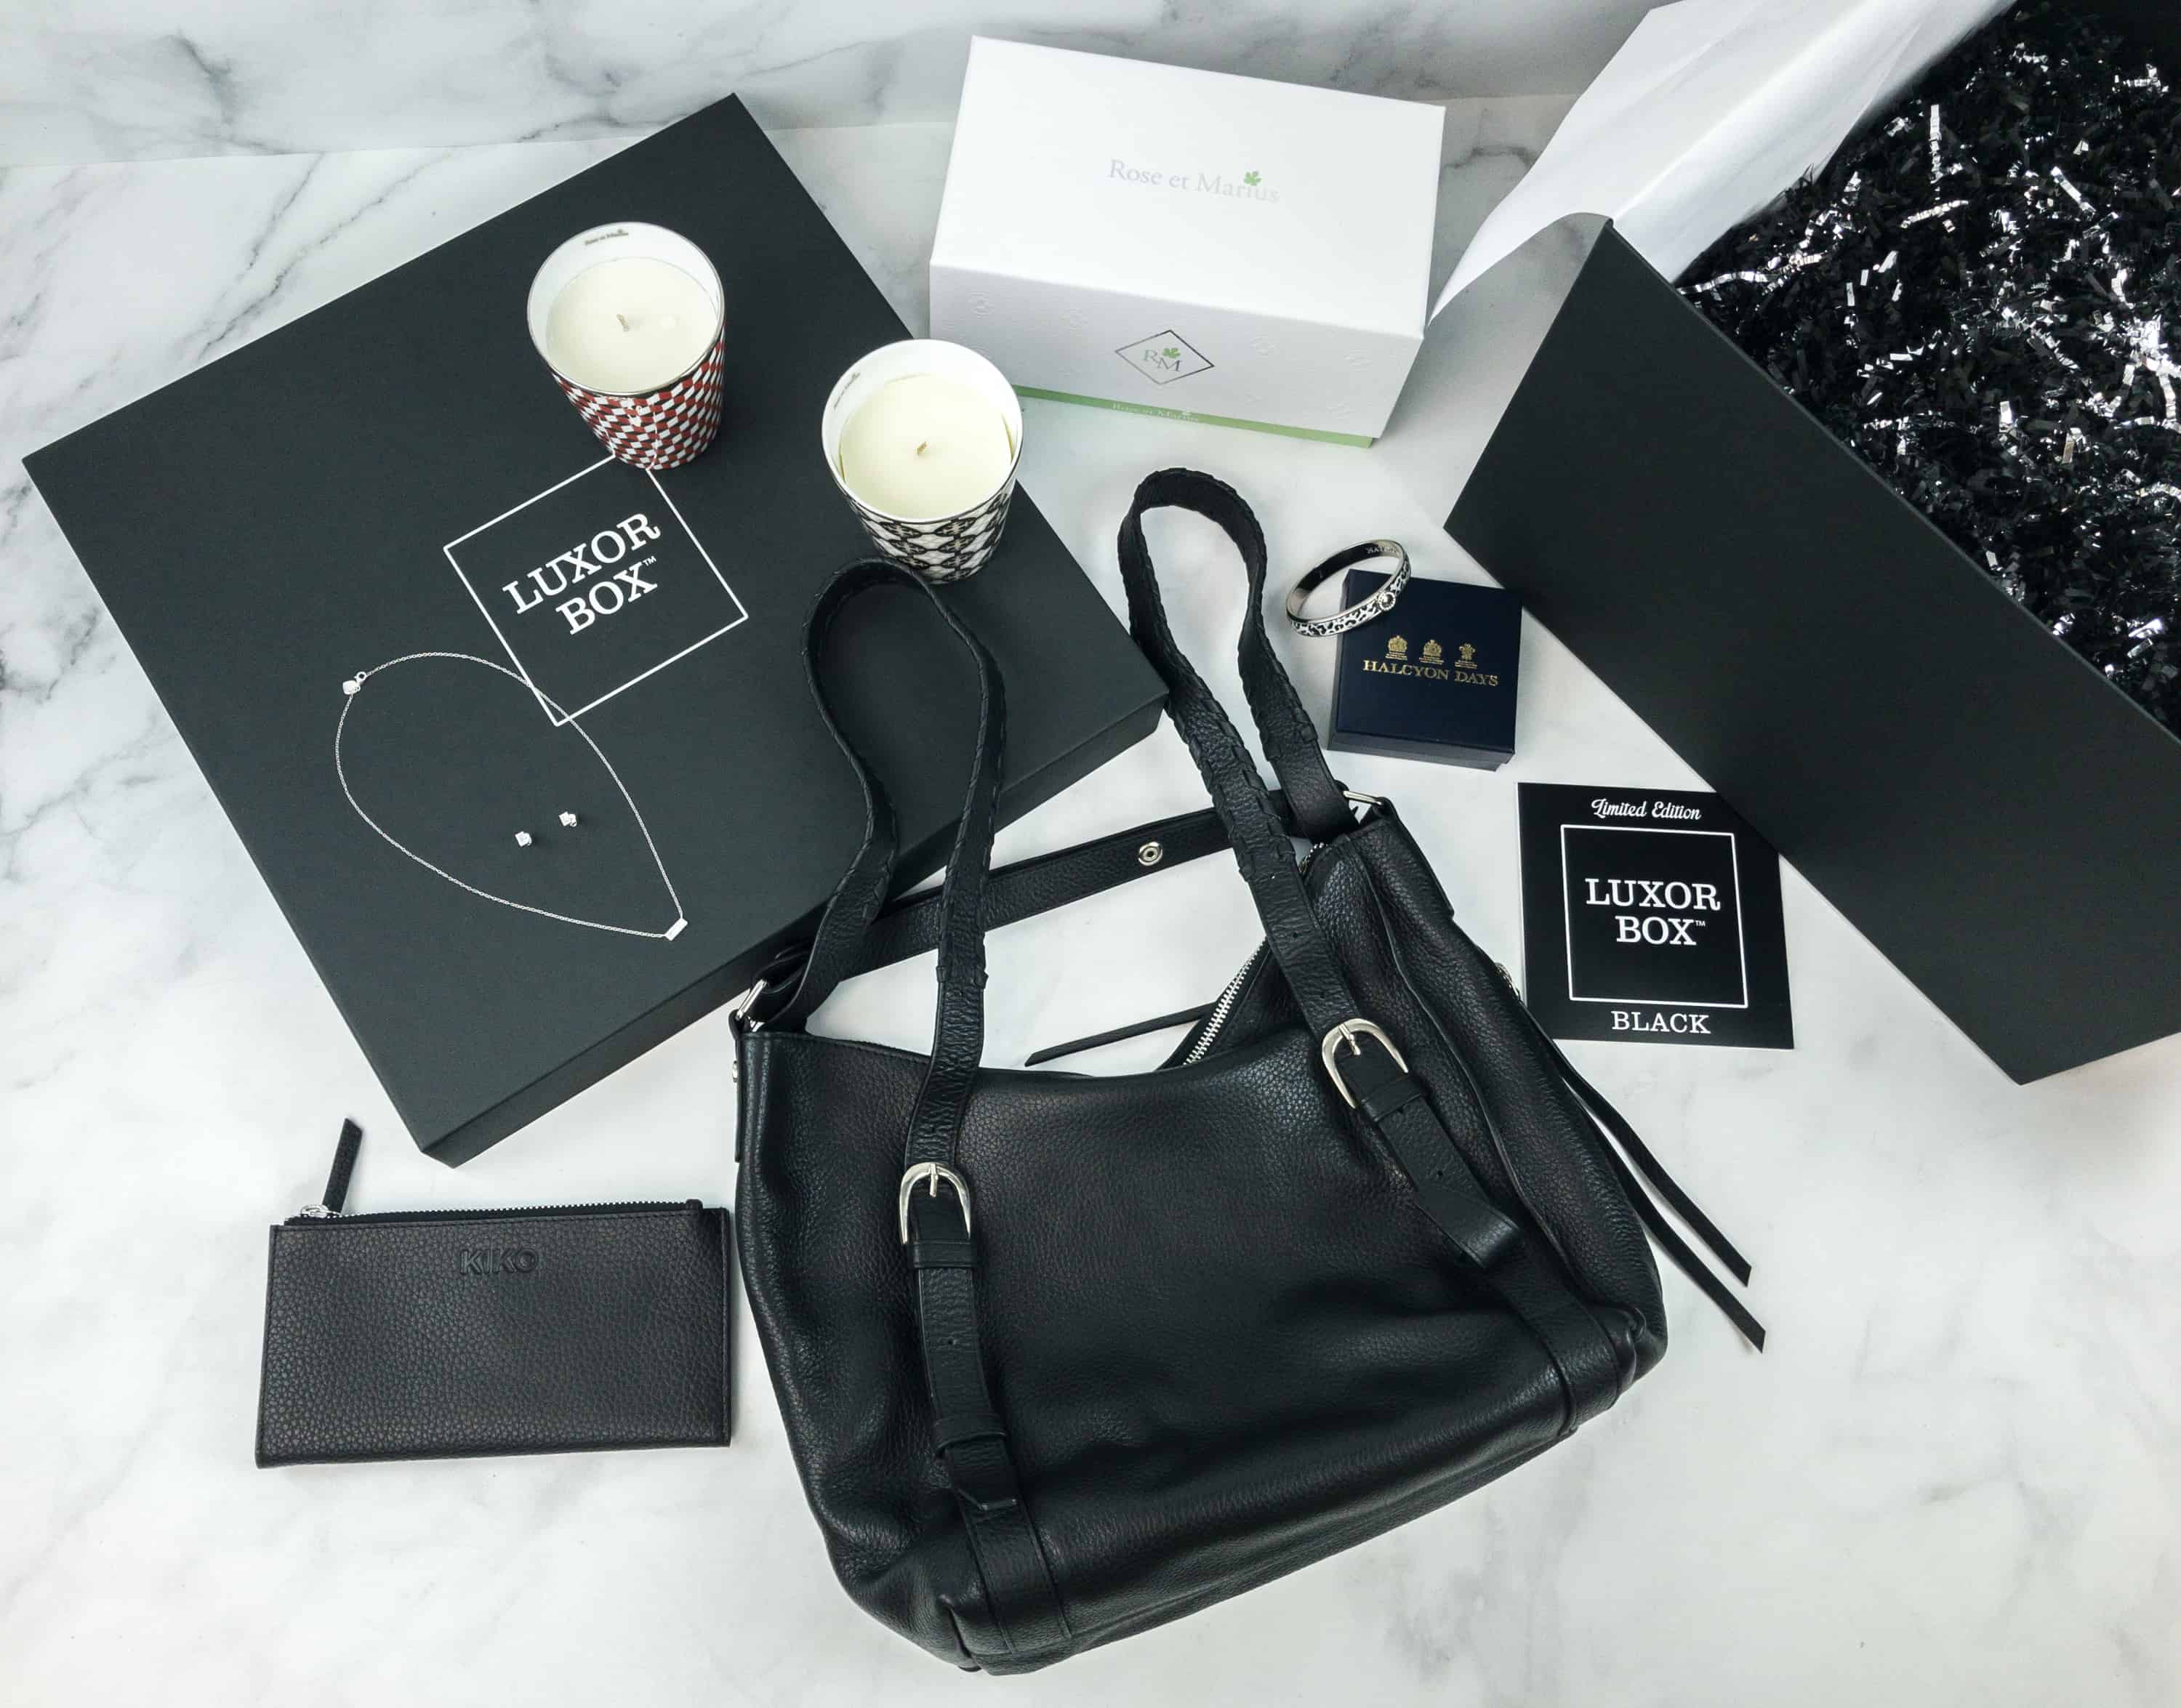 Luxor Box Limited Edition BLACK Box 2018 Review